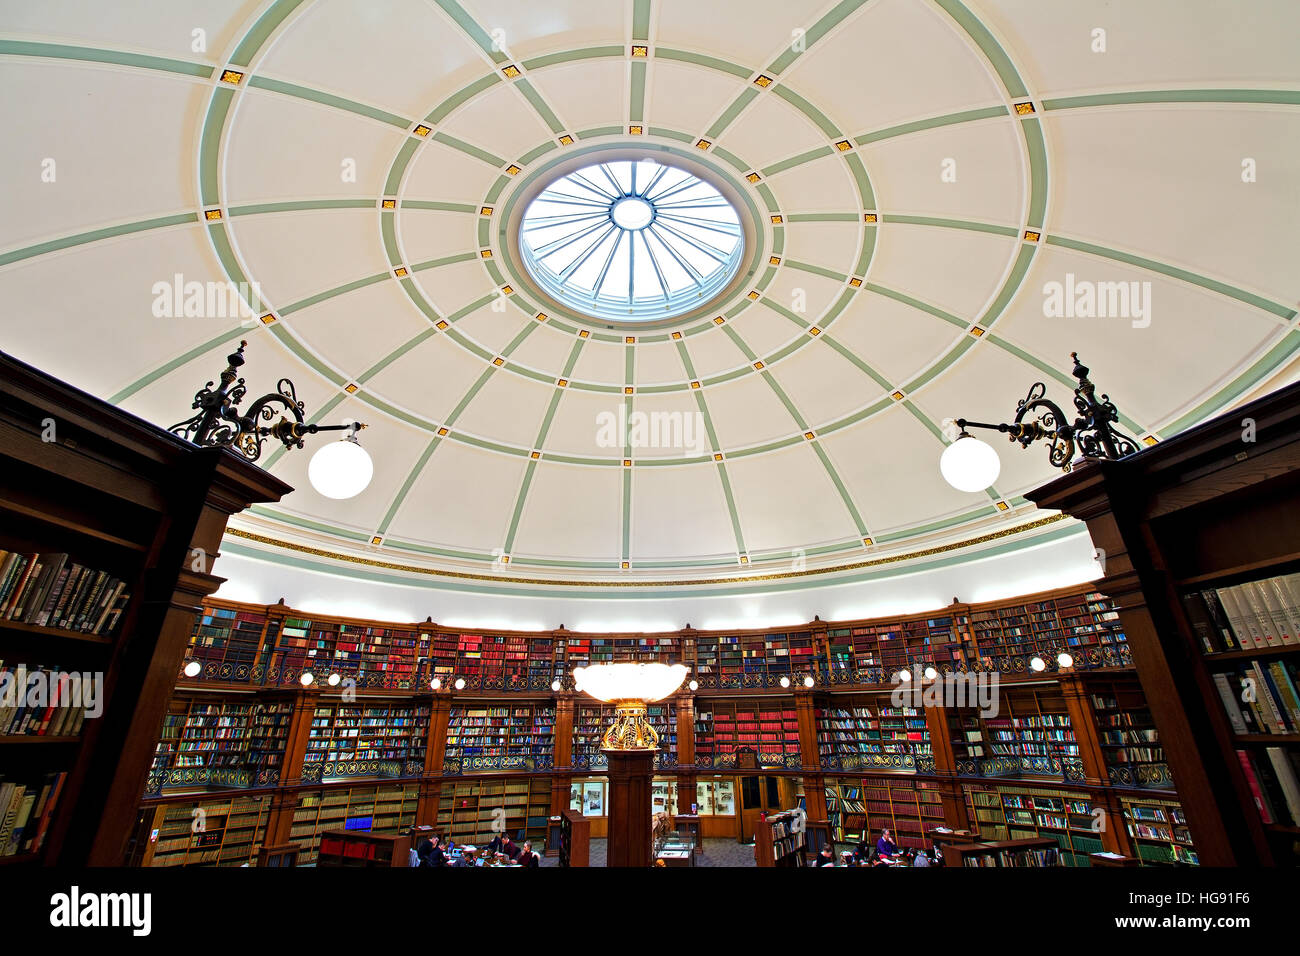 Picton Reading Room inside Liverpool Central Library. LIVERPOOL UK Stock Photo